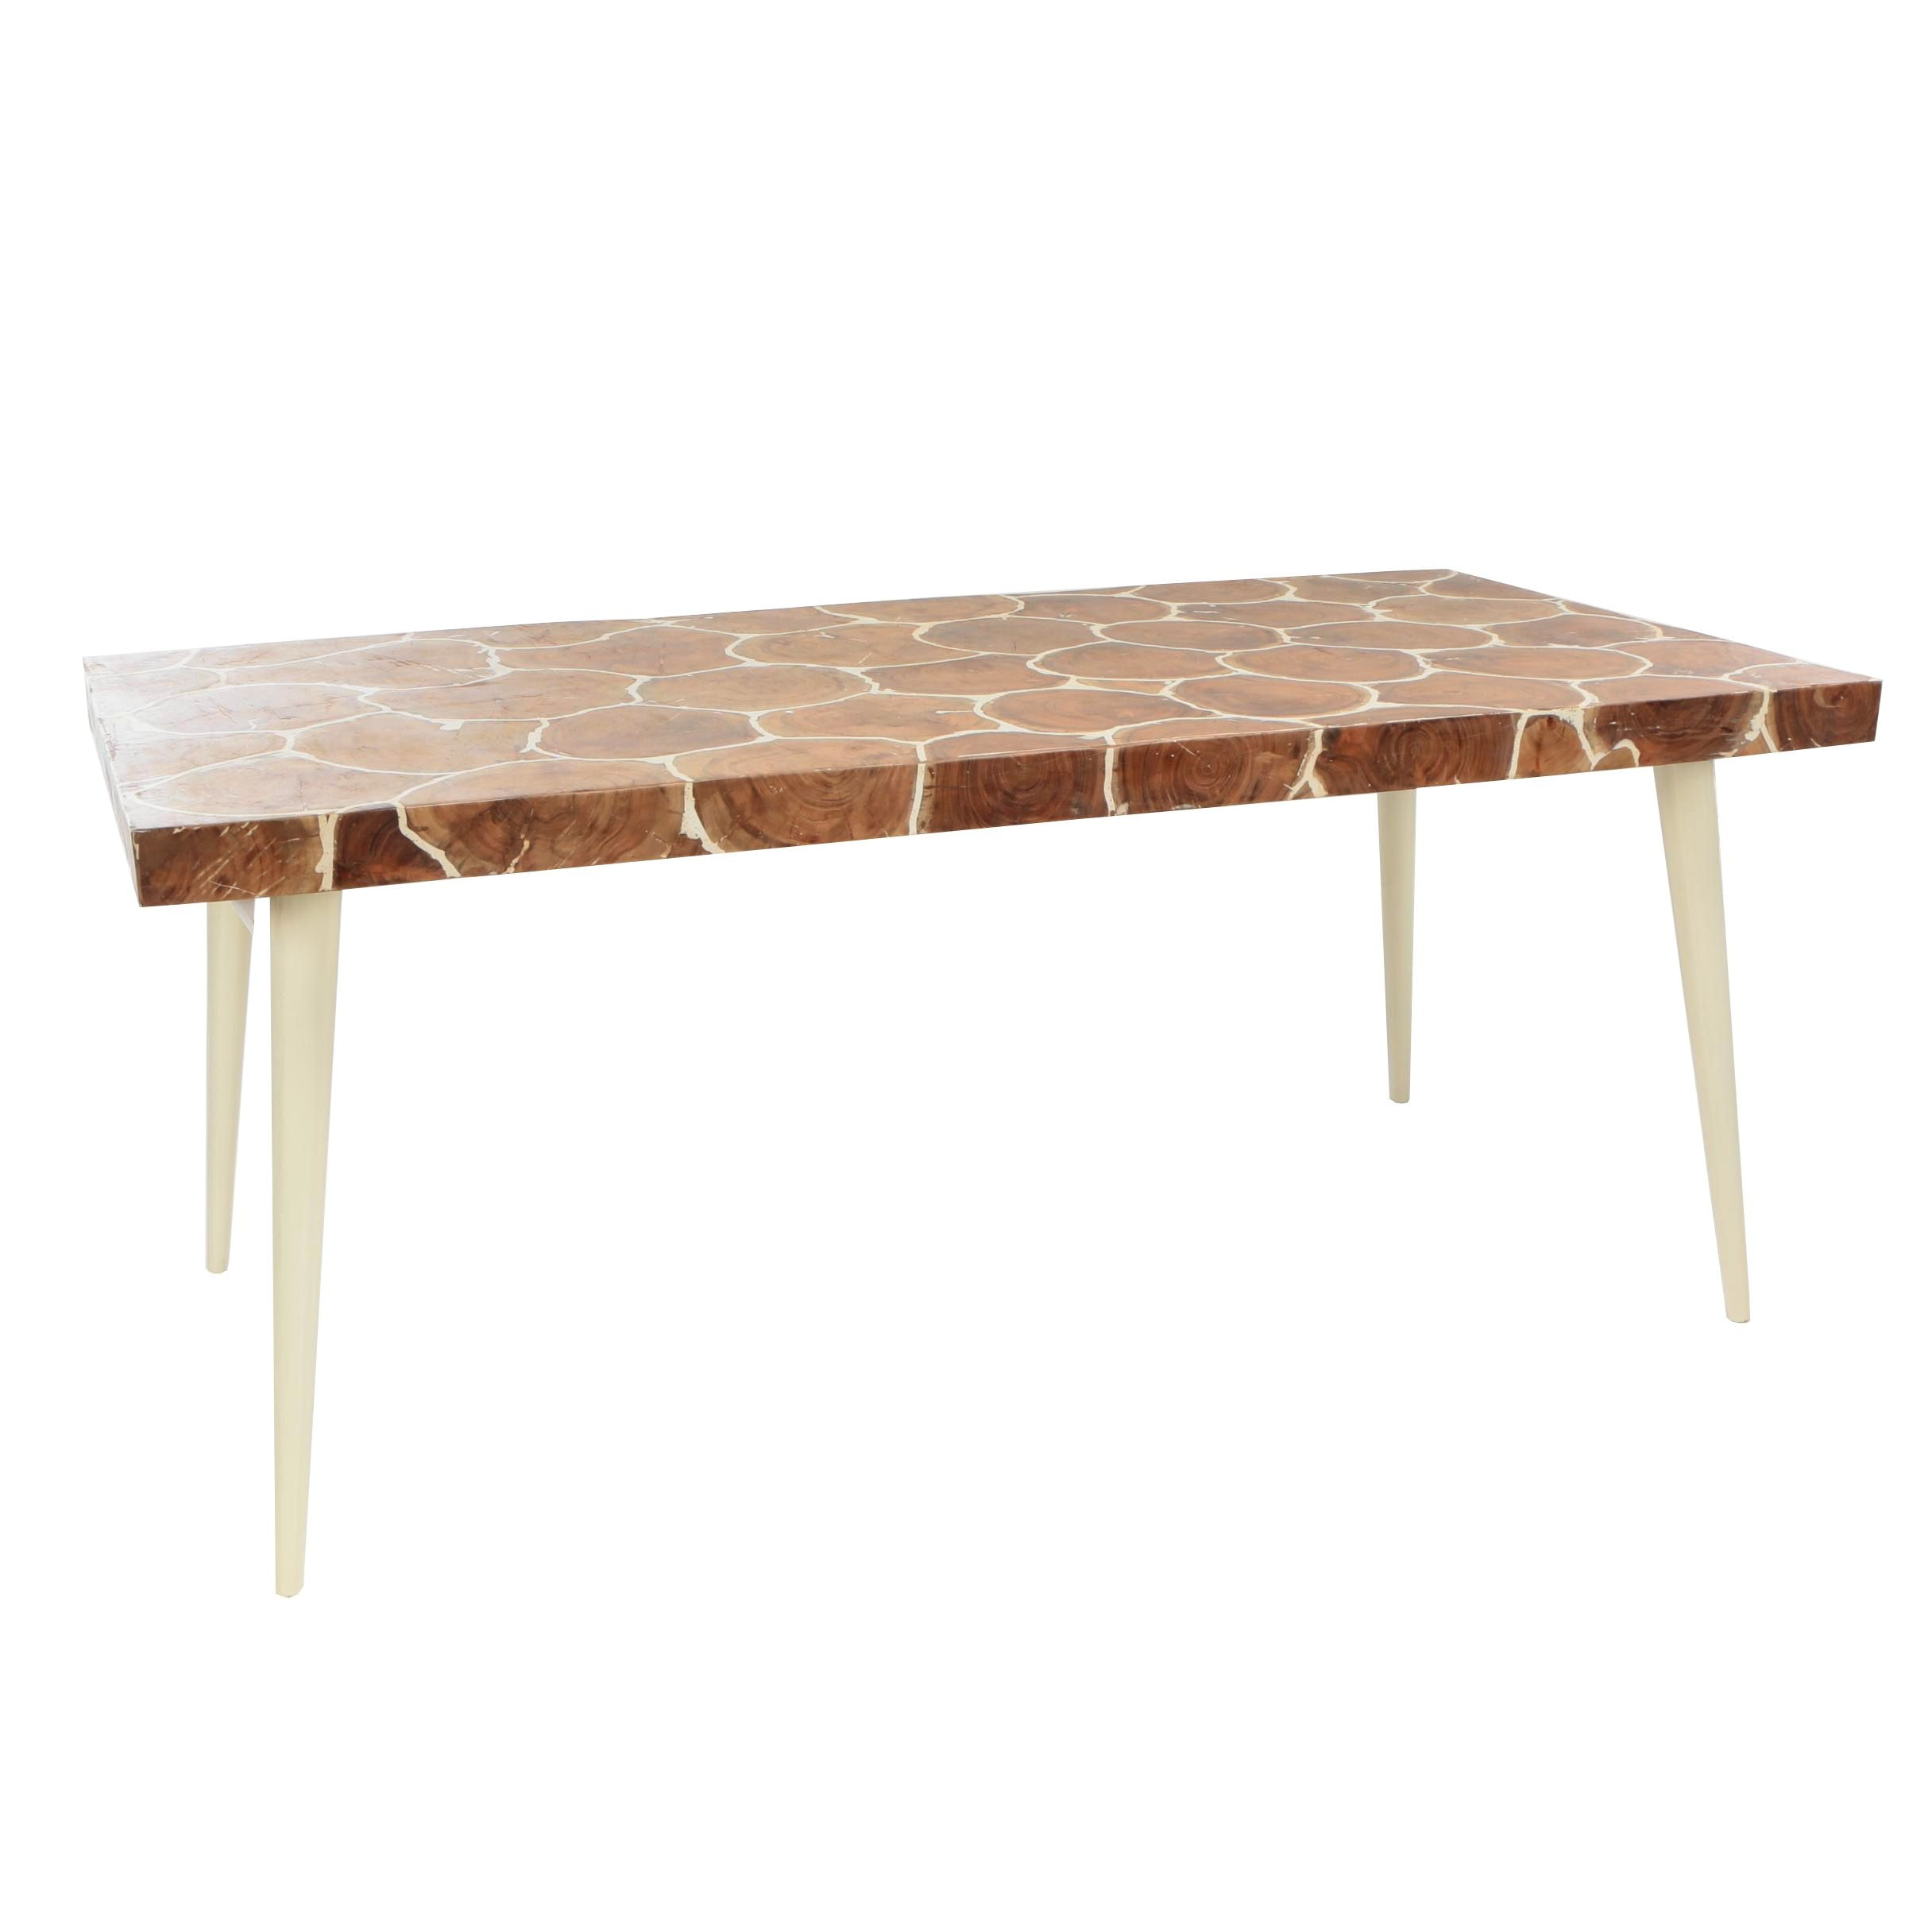 """Organics"" Wood Stump Mosaic Dining Table, Late 20th Century"